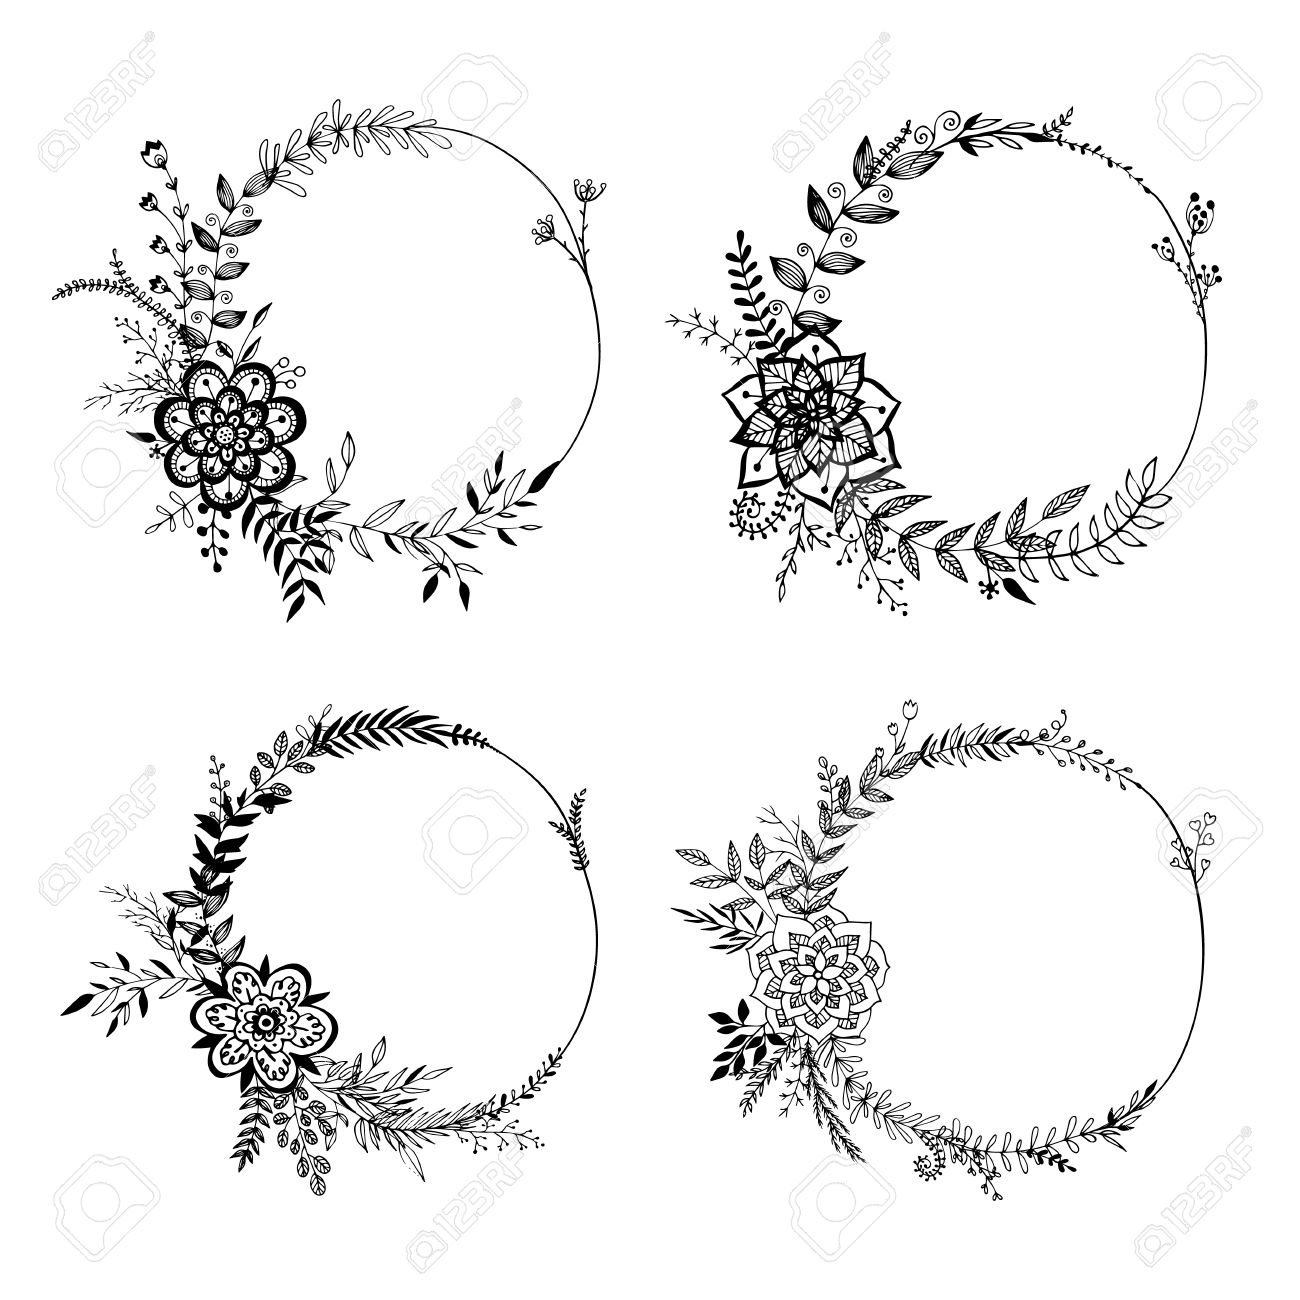 Drawn wreath #7